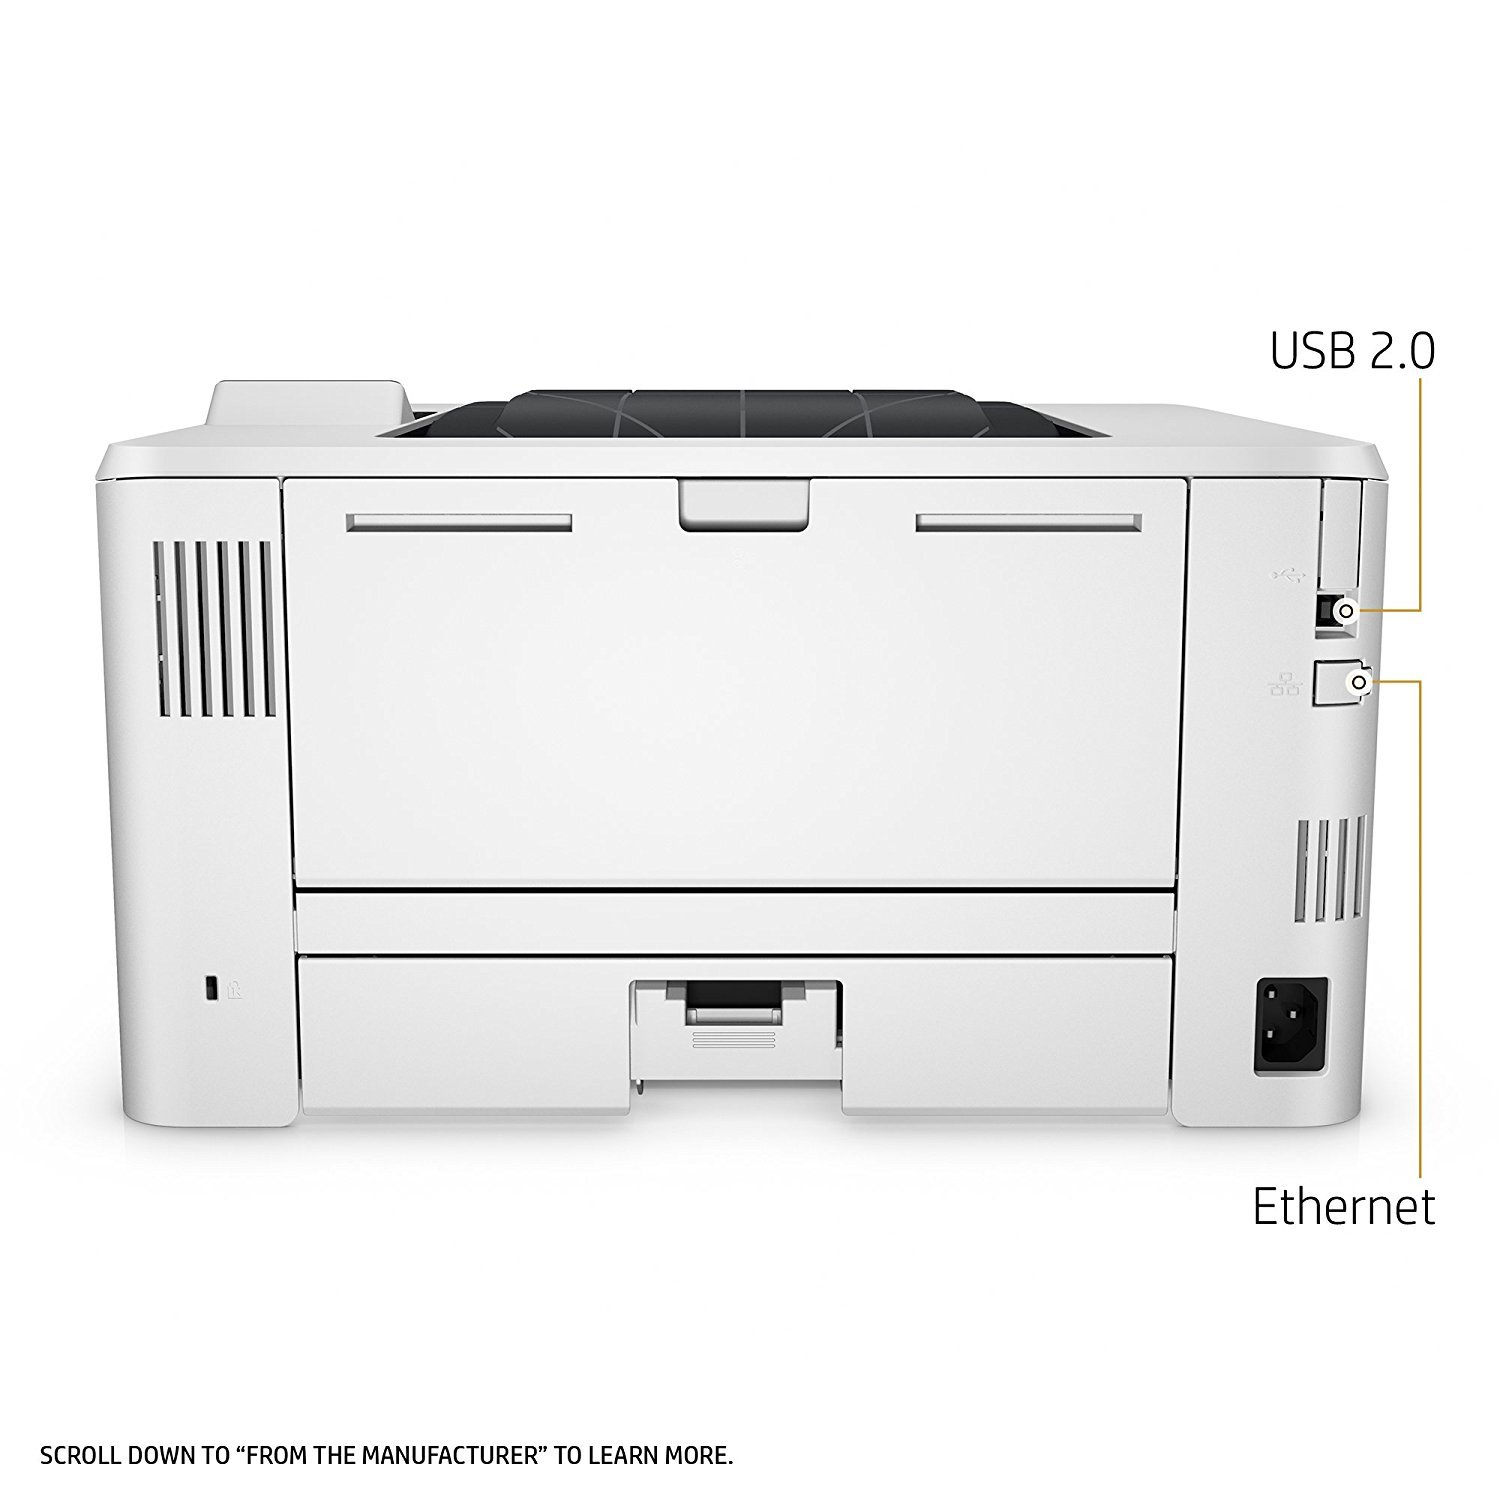 HP LaserJet Pro M402n Laser Printer with Built-in Ethernet, Amazon Dash Replenishment ready (C5F93A) by HP (Image #8)